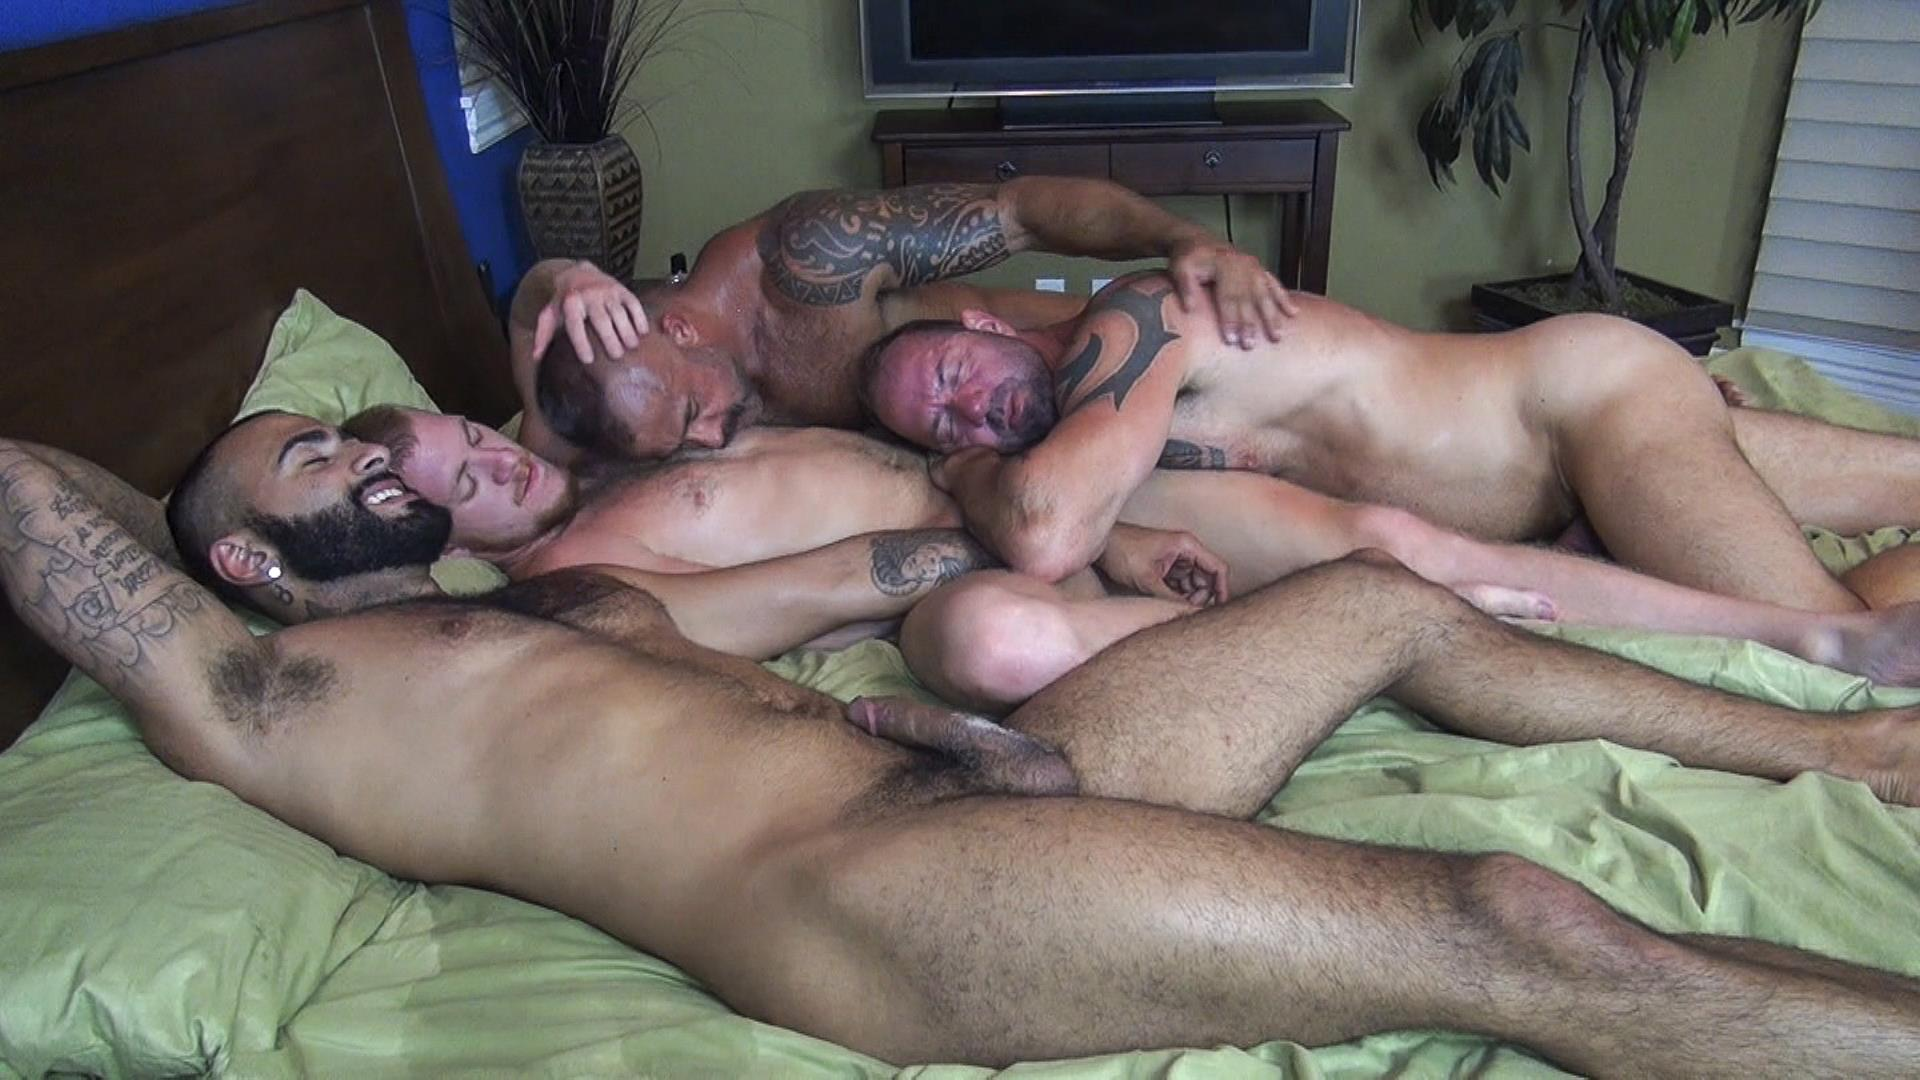 Raw-Fuck-Club-Vic-Rocco-and-Rikk-York-and-Billy-Warren-and-Job-Galt-Bareback-Daddy-Amateur-Gay-Porn-03.jpg